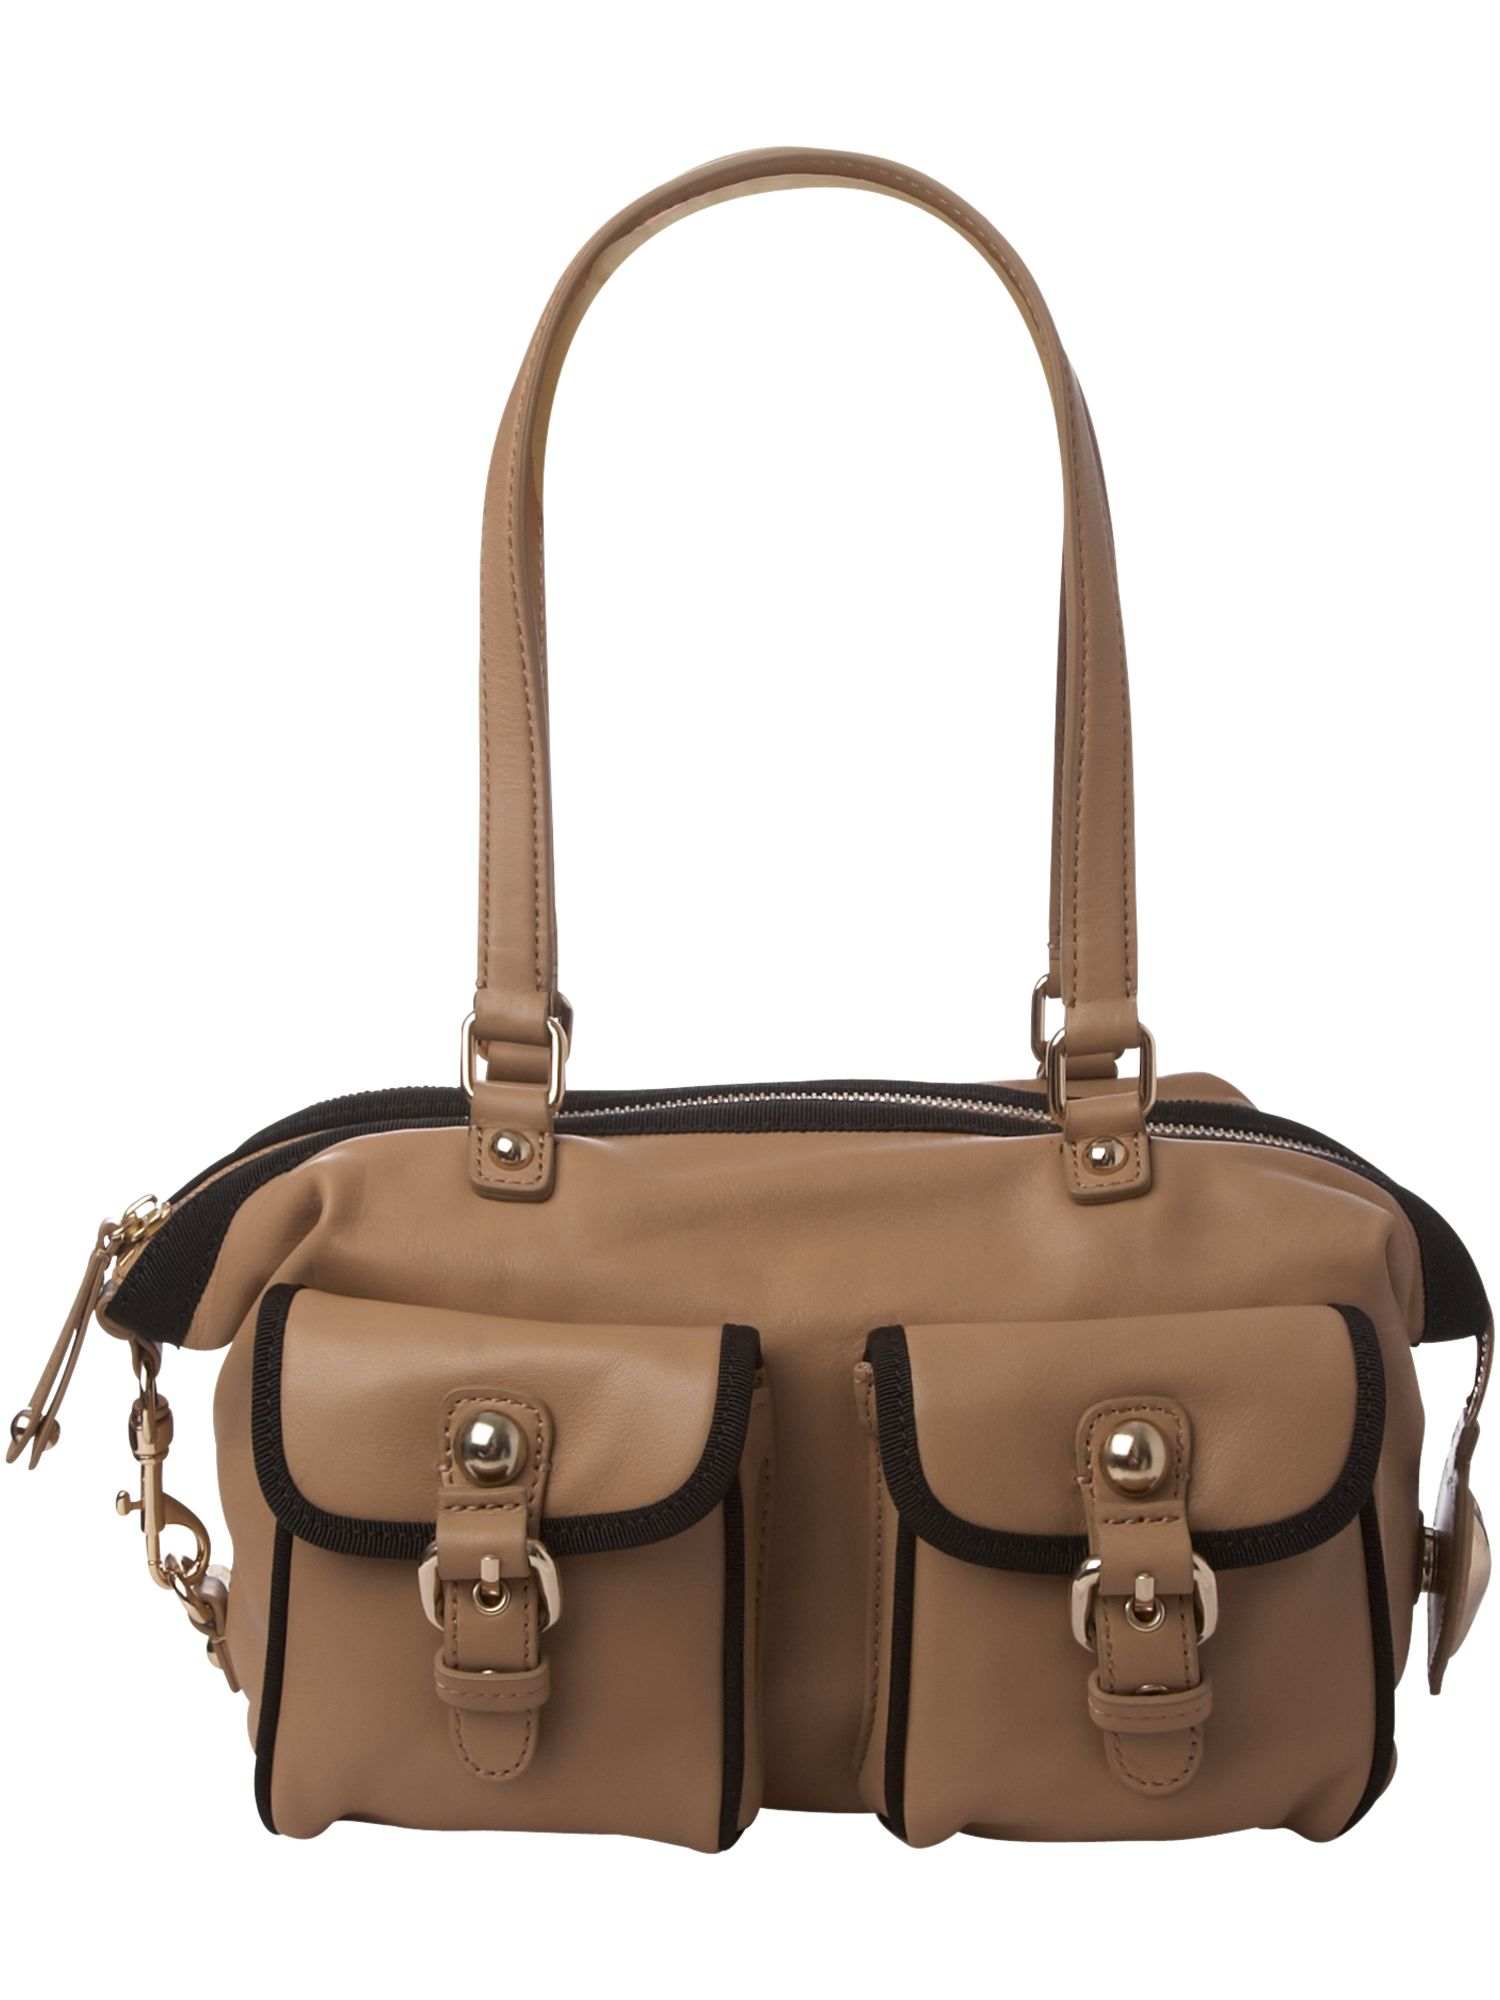 Moschino Cheap & Chic Pleasure Medium leather tote bag. product image